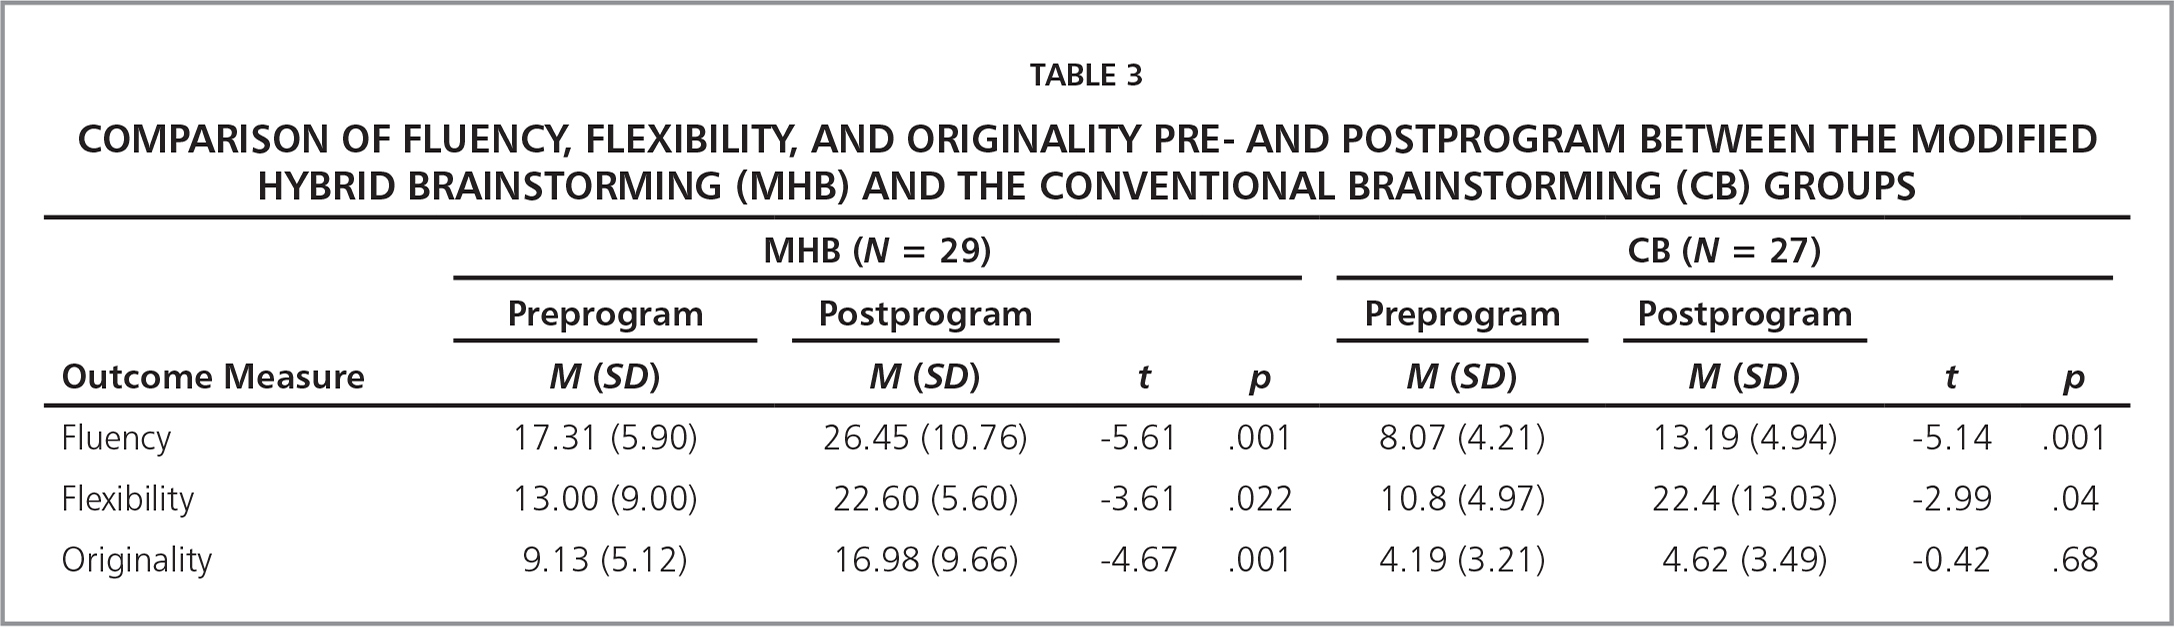 Comparison of Fluency, Flexibility, and Originality Pre- and Postprogram Between the Modified Hybrid Brainstorming (MHB) and the Conventional Brainstorming (CB) Groups